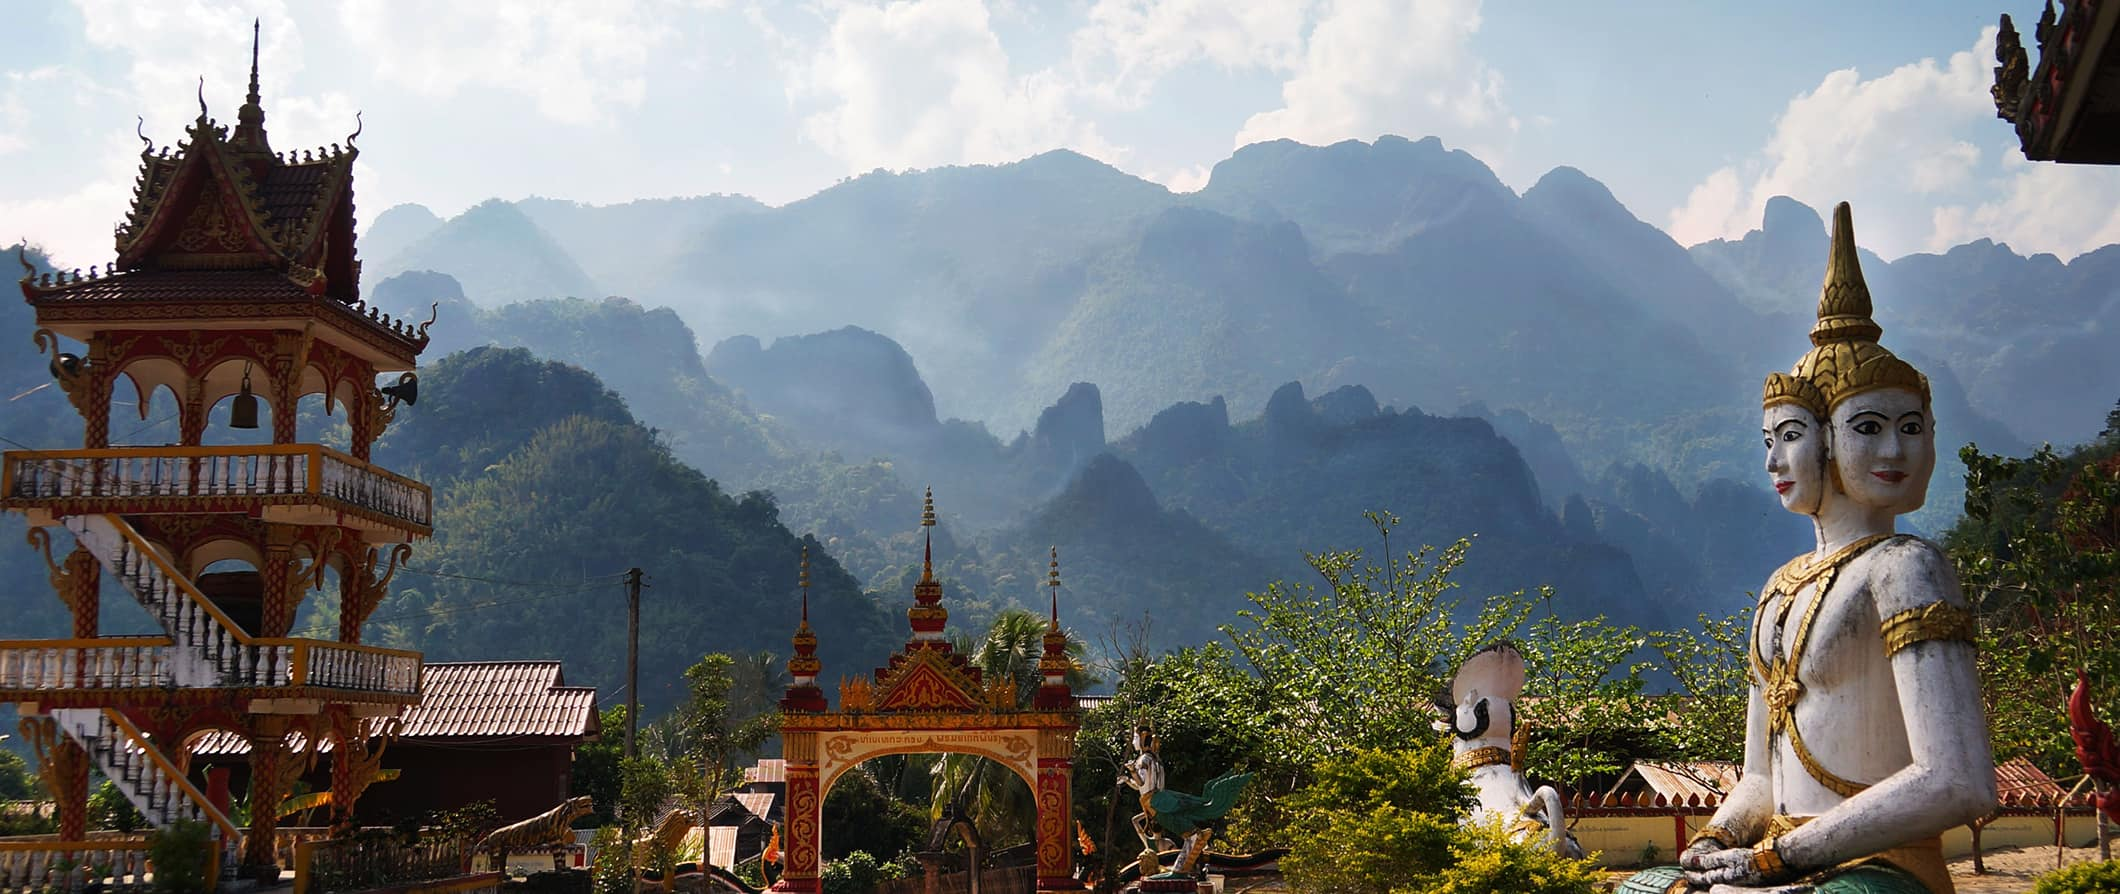 temples and mountains in Vang Vieng